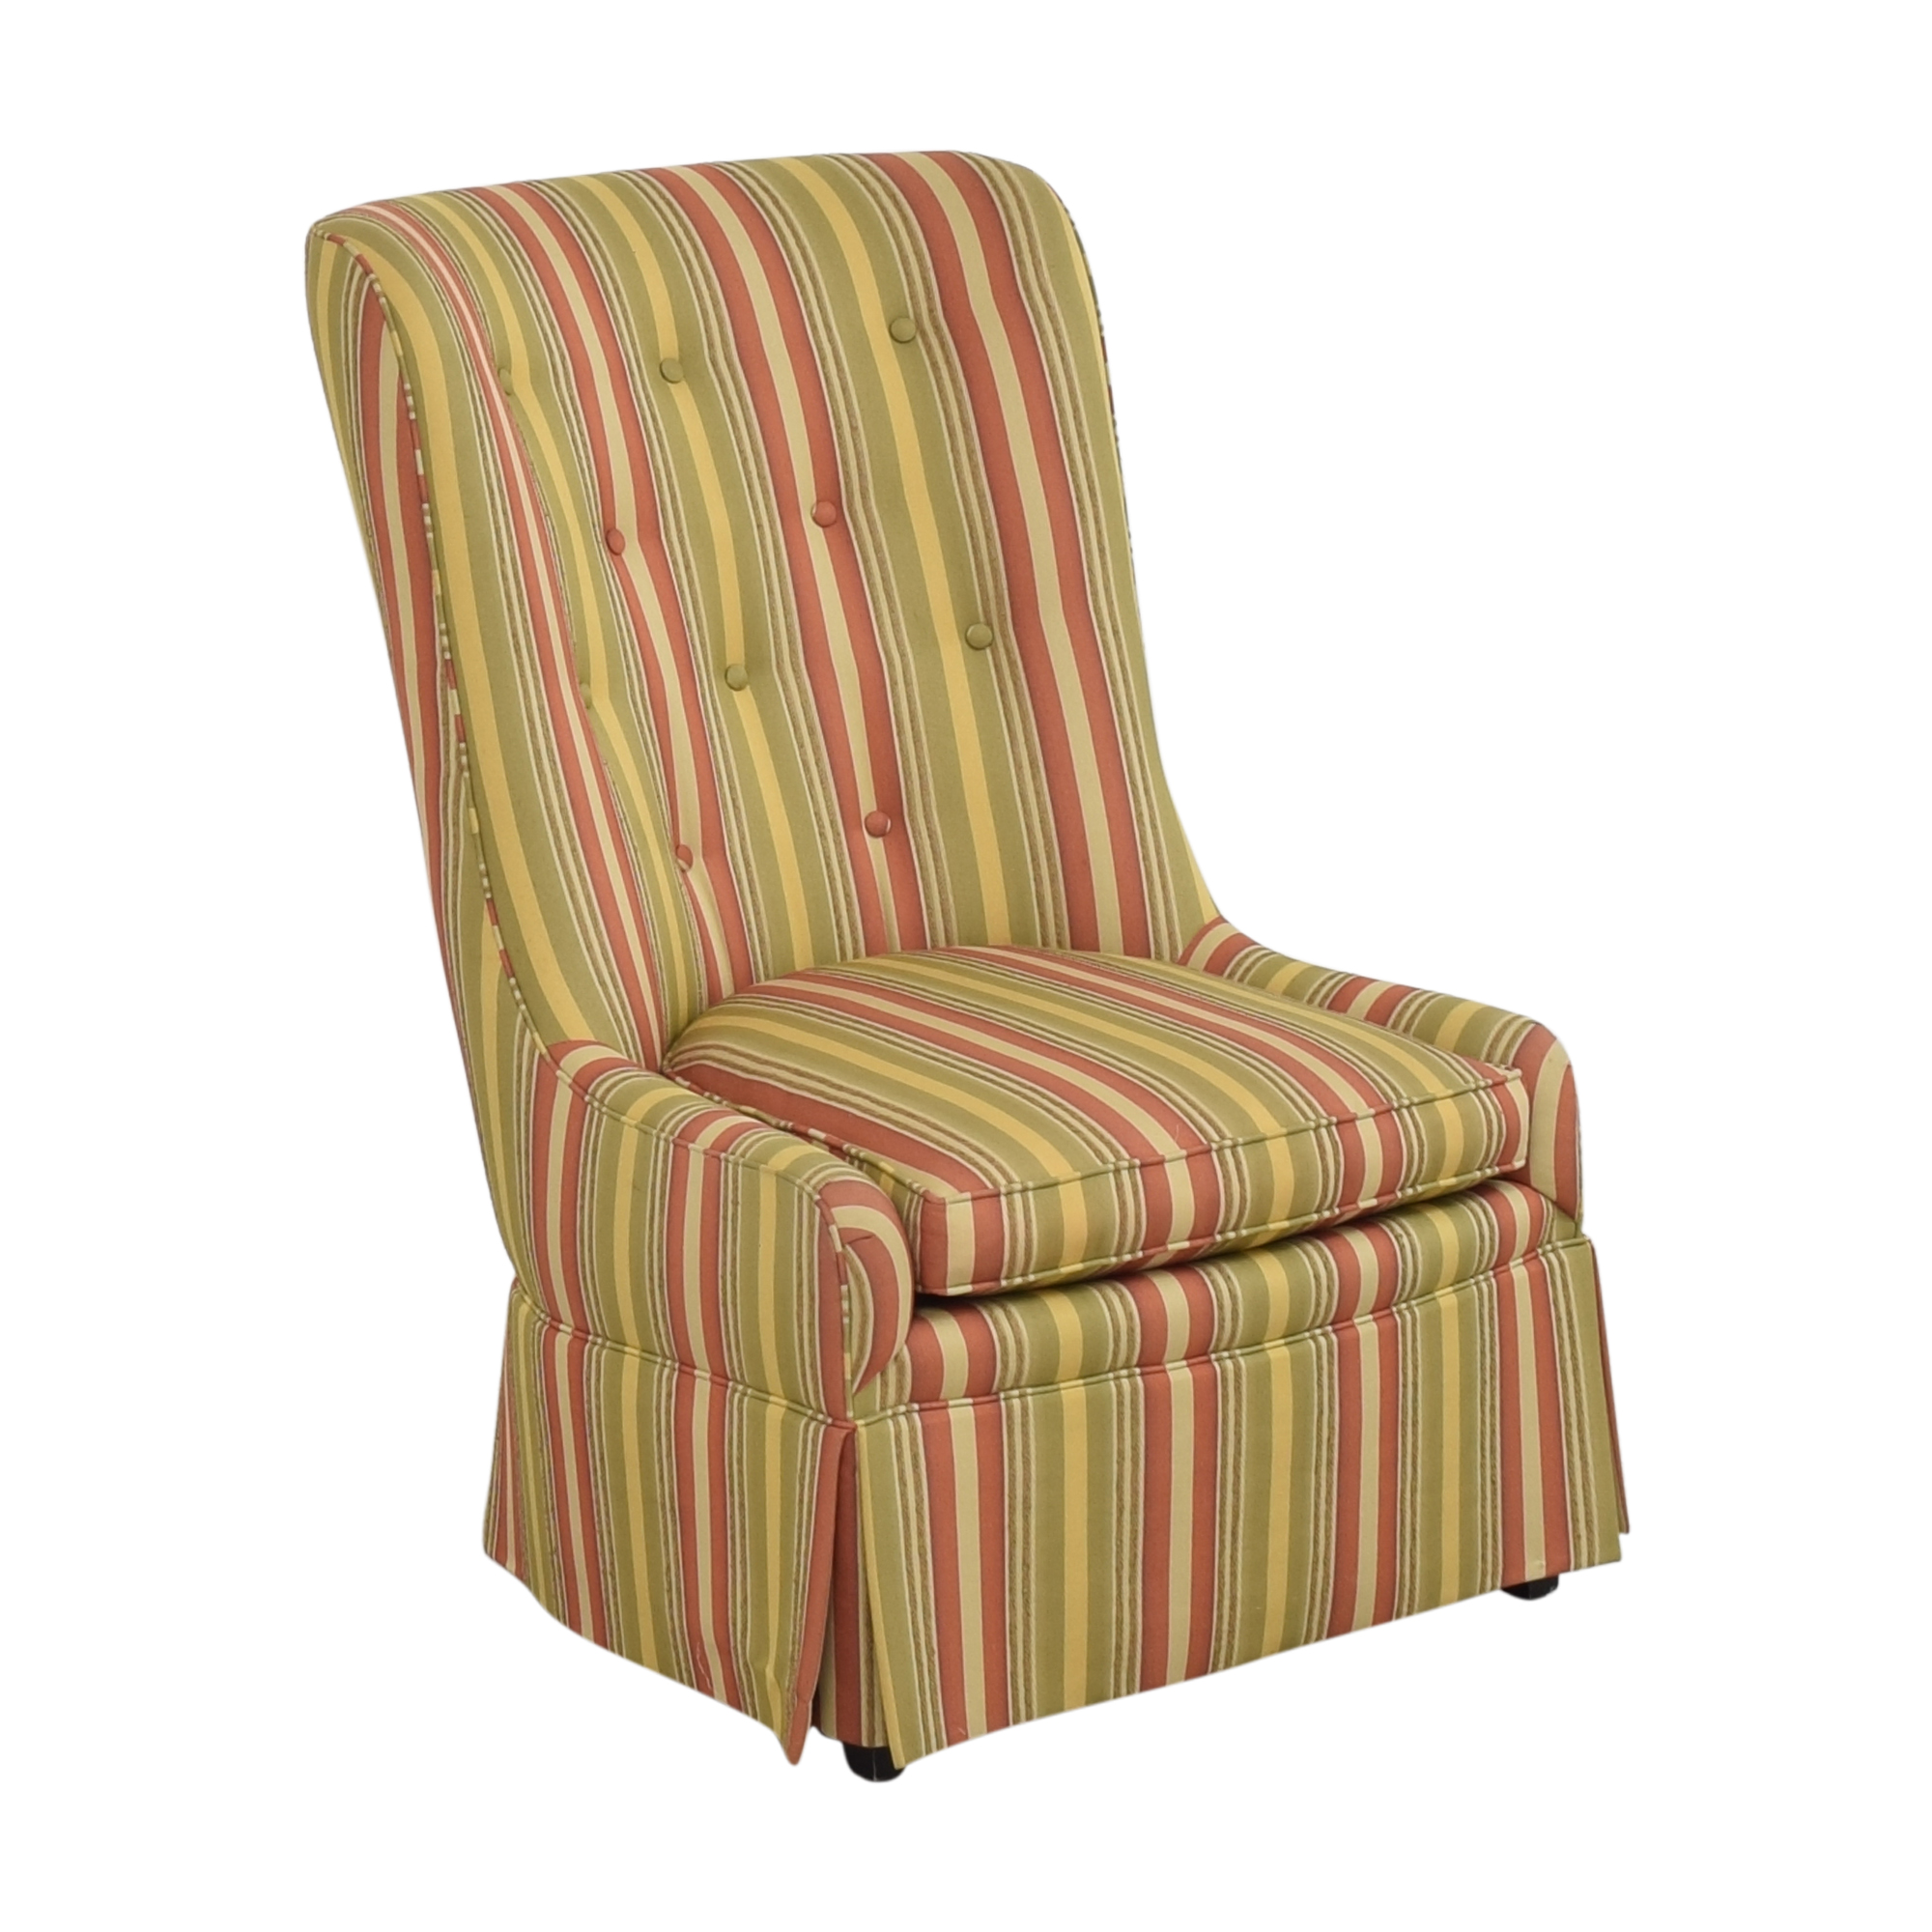 Theodore Alexander Theodore Alexander Althorp Living History Accent Chair Chairs